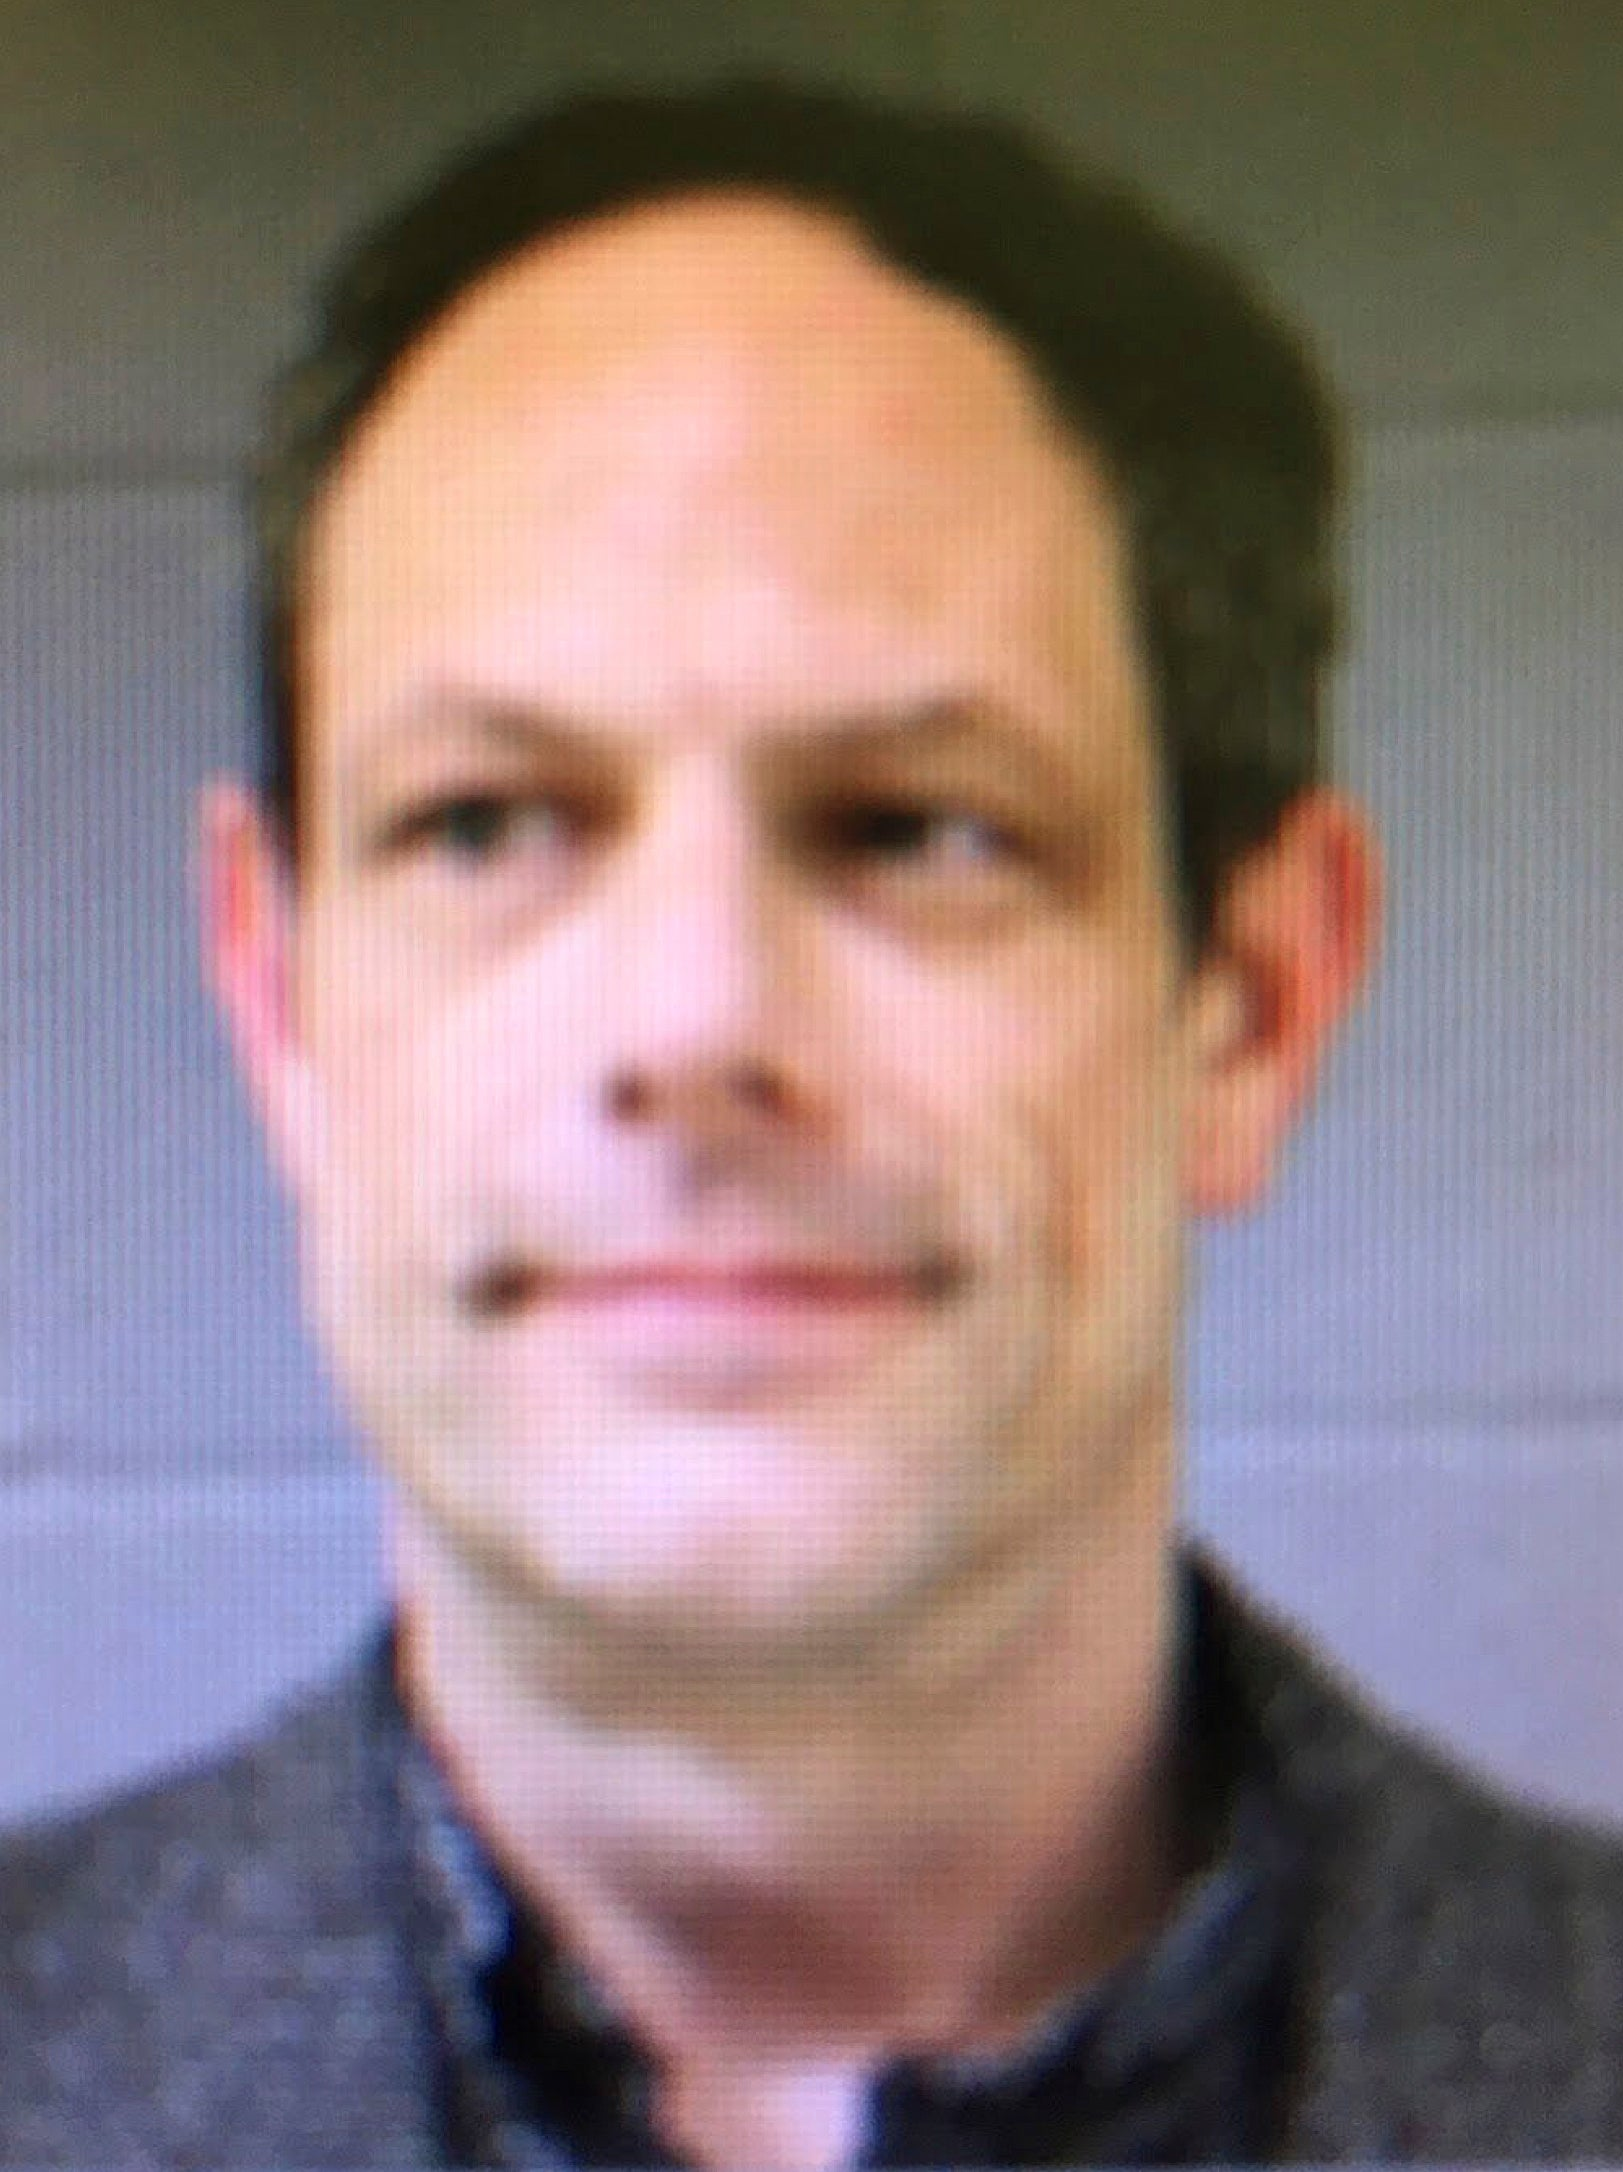 This booking photo released by the Newtown Police Department shows Jason Adams, arrested Wednesday, April 6, 2016, and charged with having a gun at the town's middle school. Adams, 46, a teacher at the school, was charged with possession of a weapon on school grounds, which is illegal in Connecticut. Police said he has a valid pistol permit. A gunman shot and killed 20 students and six educators at nearby Sandy Hook Elementary School in Newtown in December 2012. (Newtown Police Department via AP)